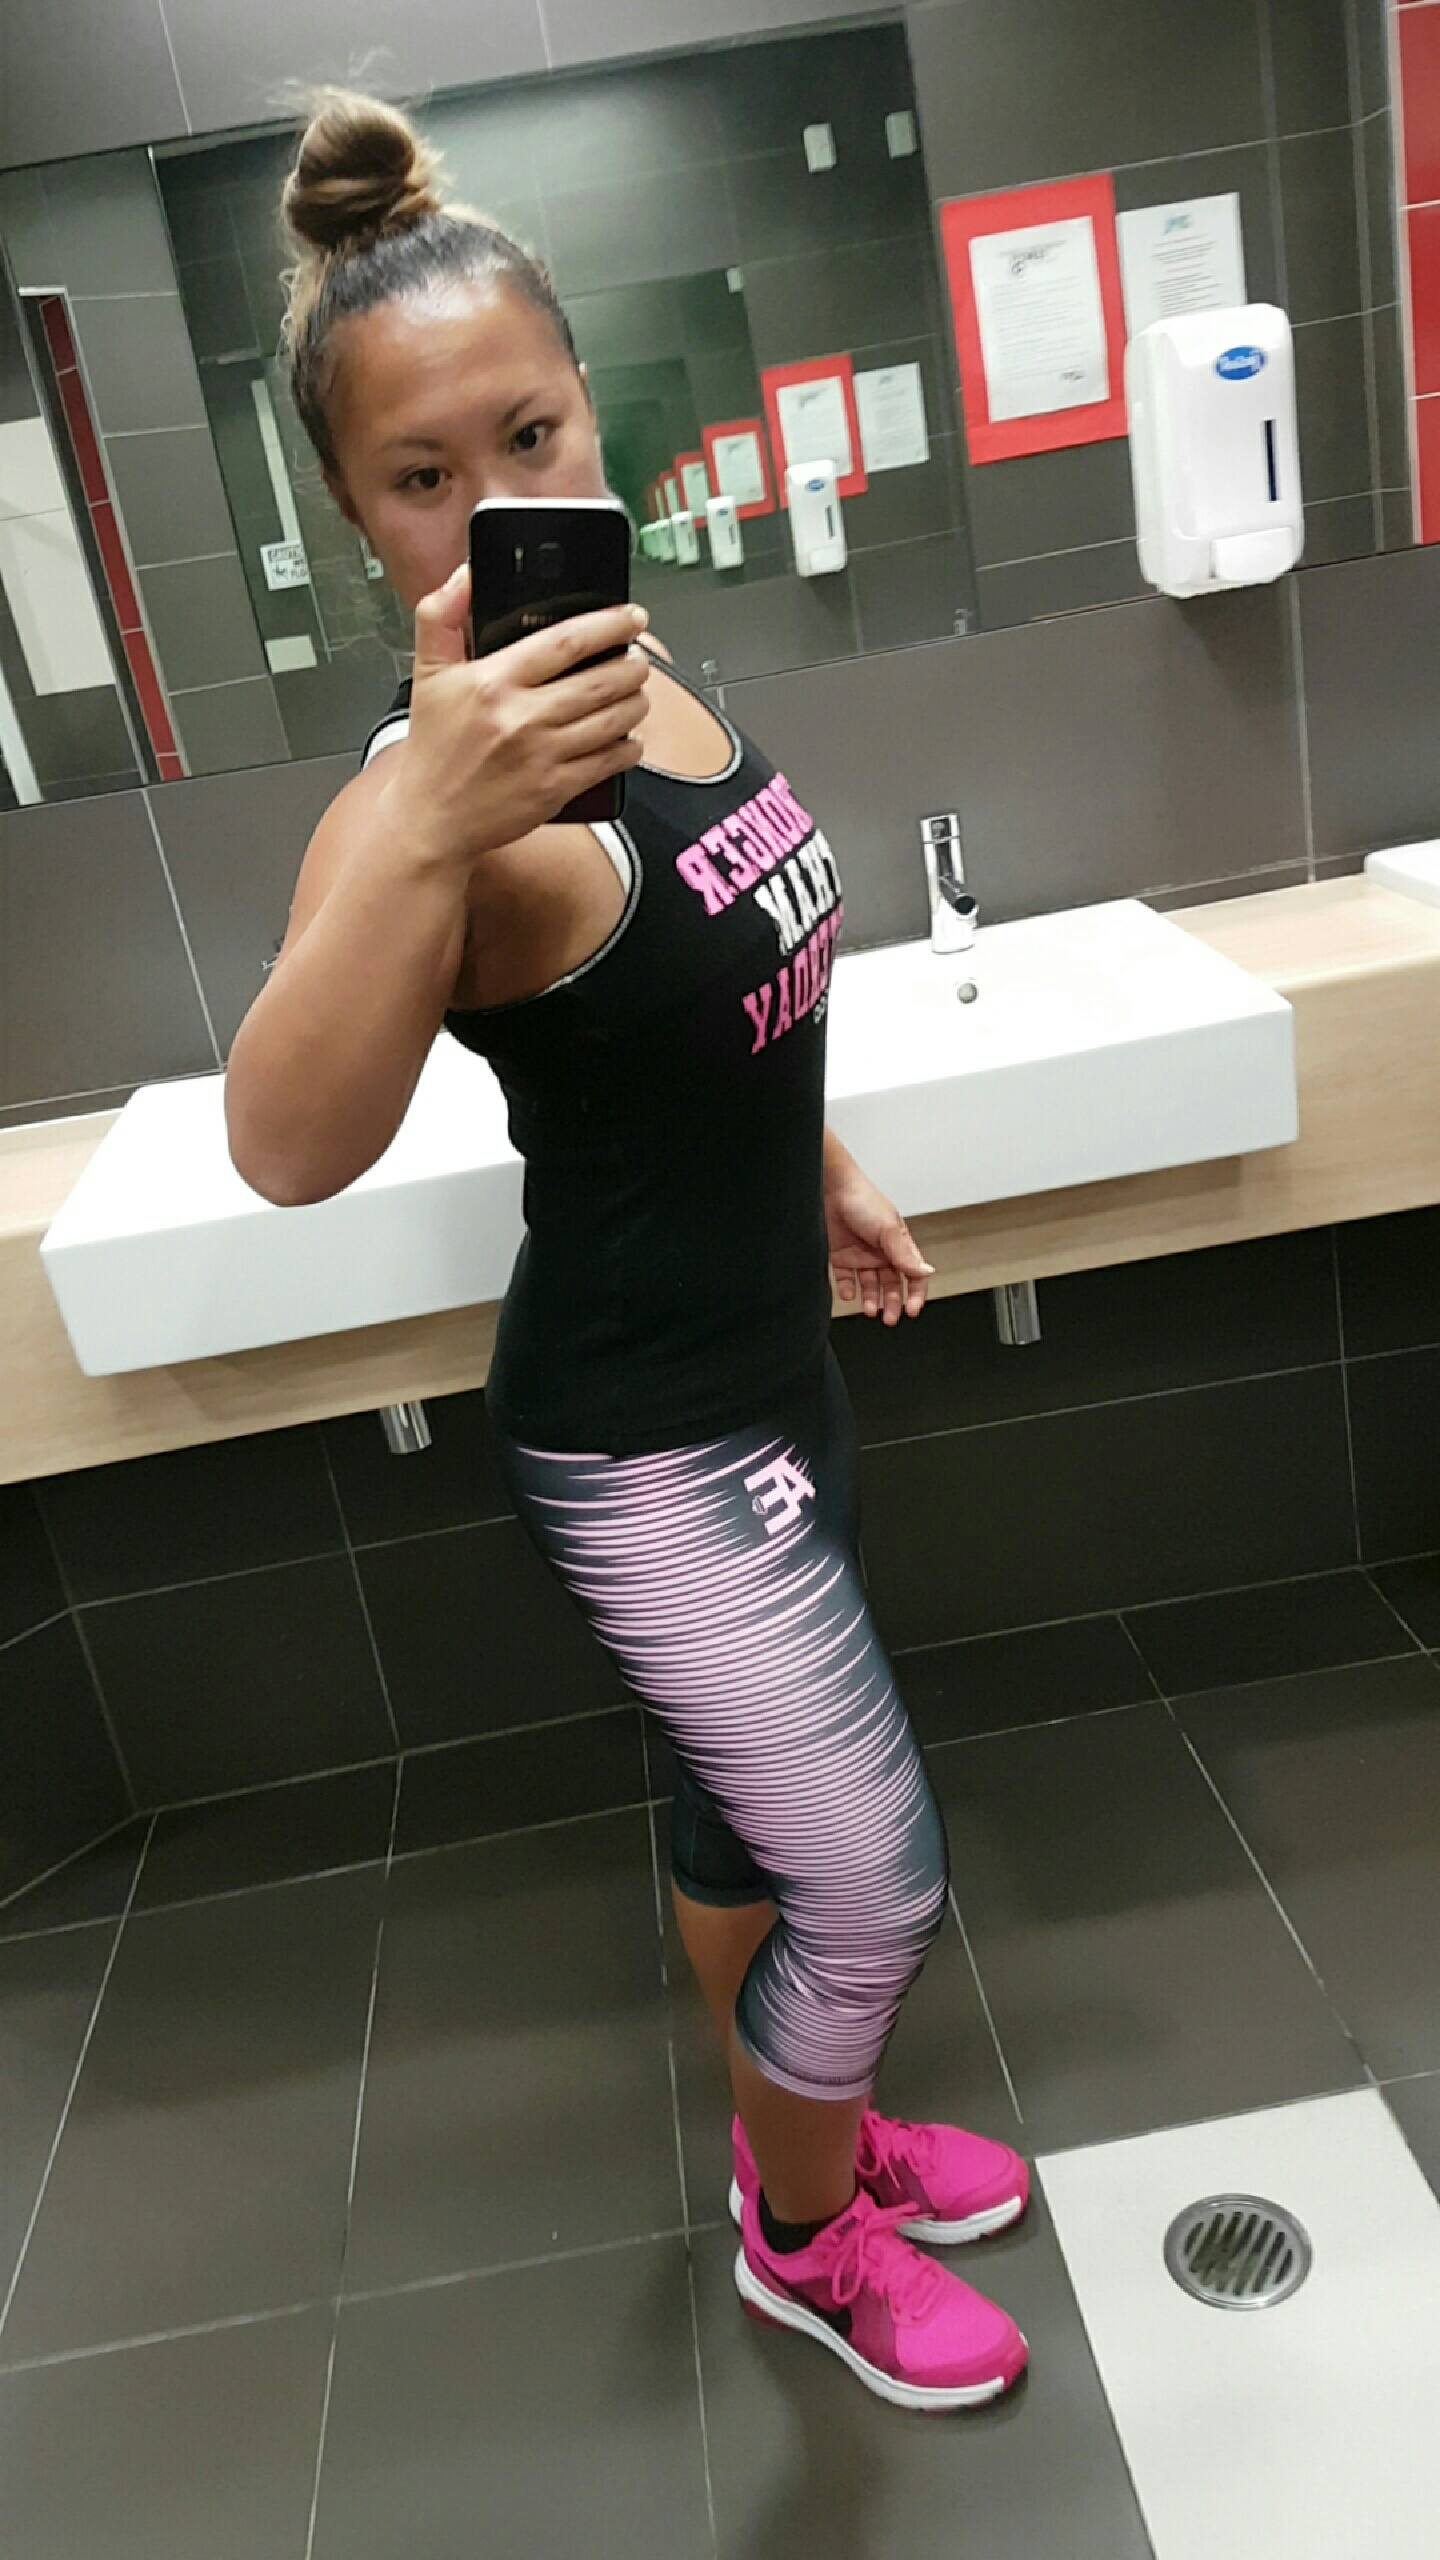 Note; if you want to order a pair of the leggings I am wearing please contact me via the facebook page, my instagram or the contact form on the home page of the website. Social media links found on the website.  Www.thefitnessfreedomflow.com